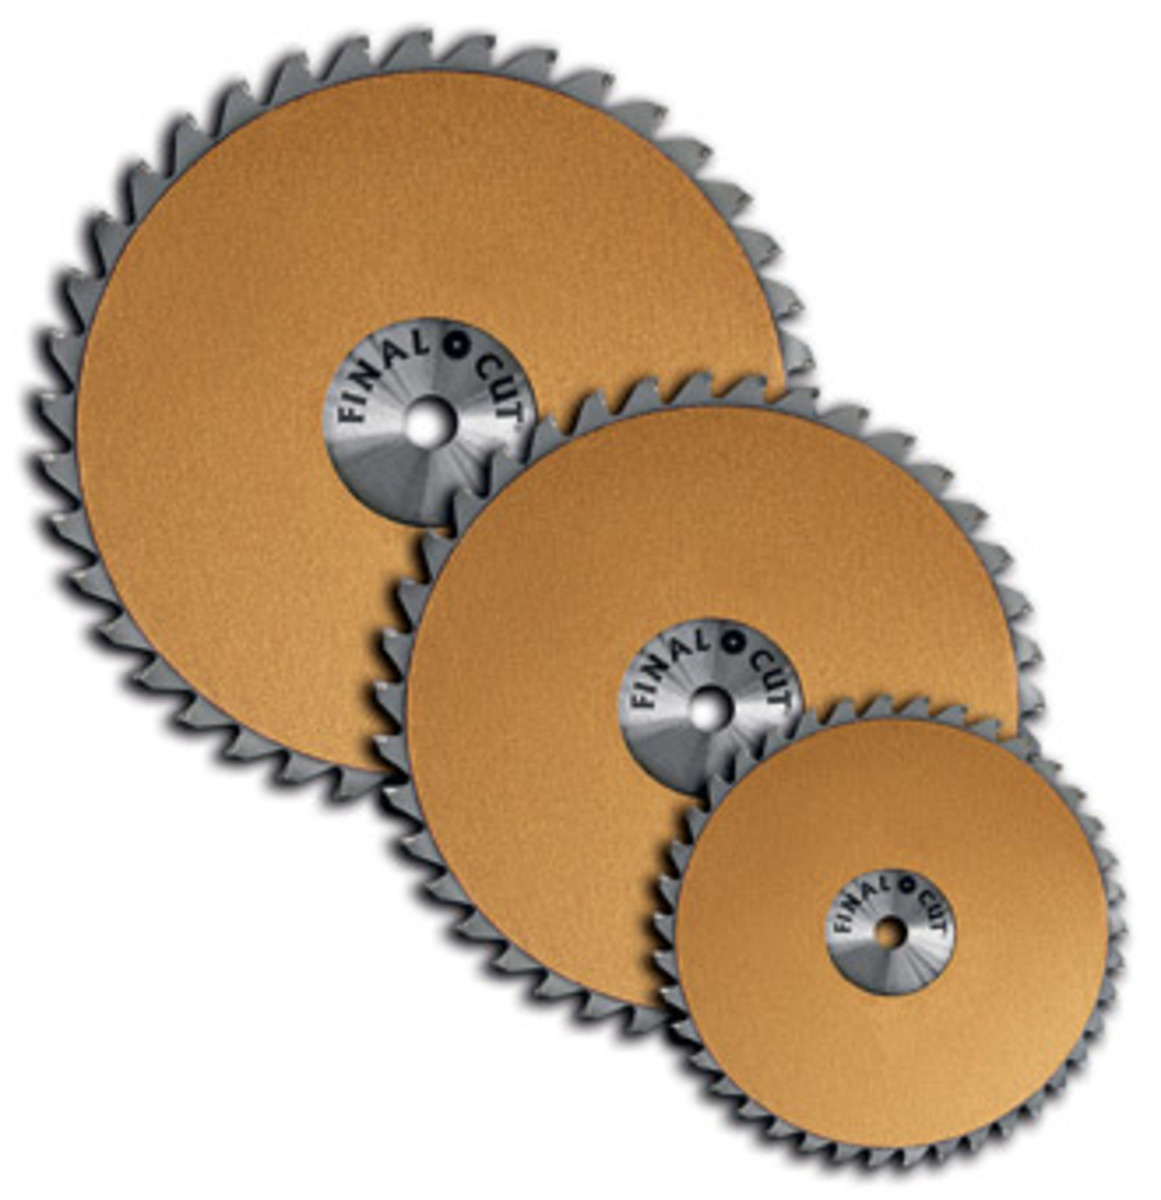 The Final Cur Saw Blade sands and saws at the same time.